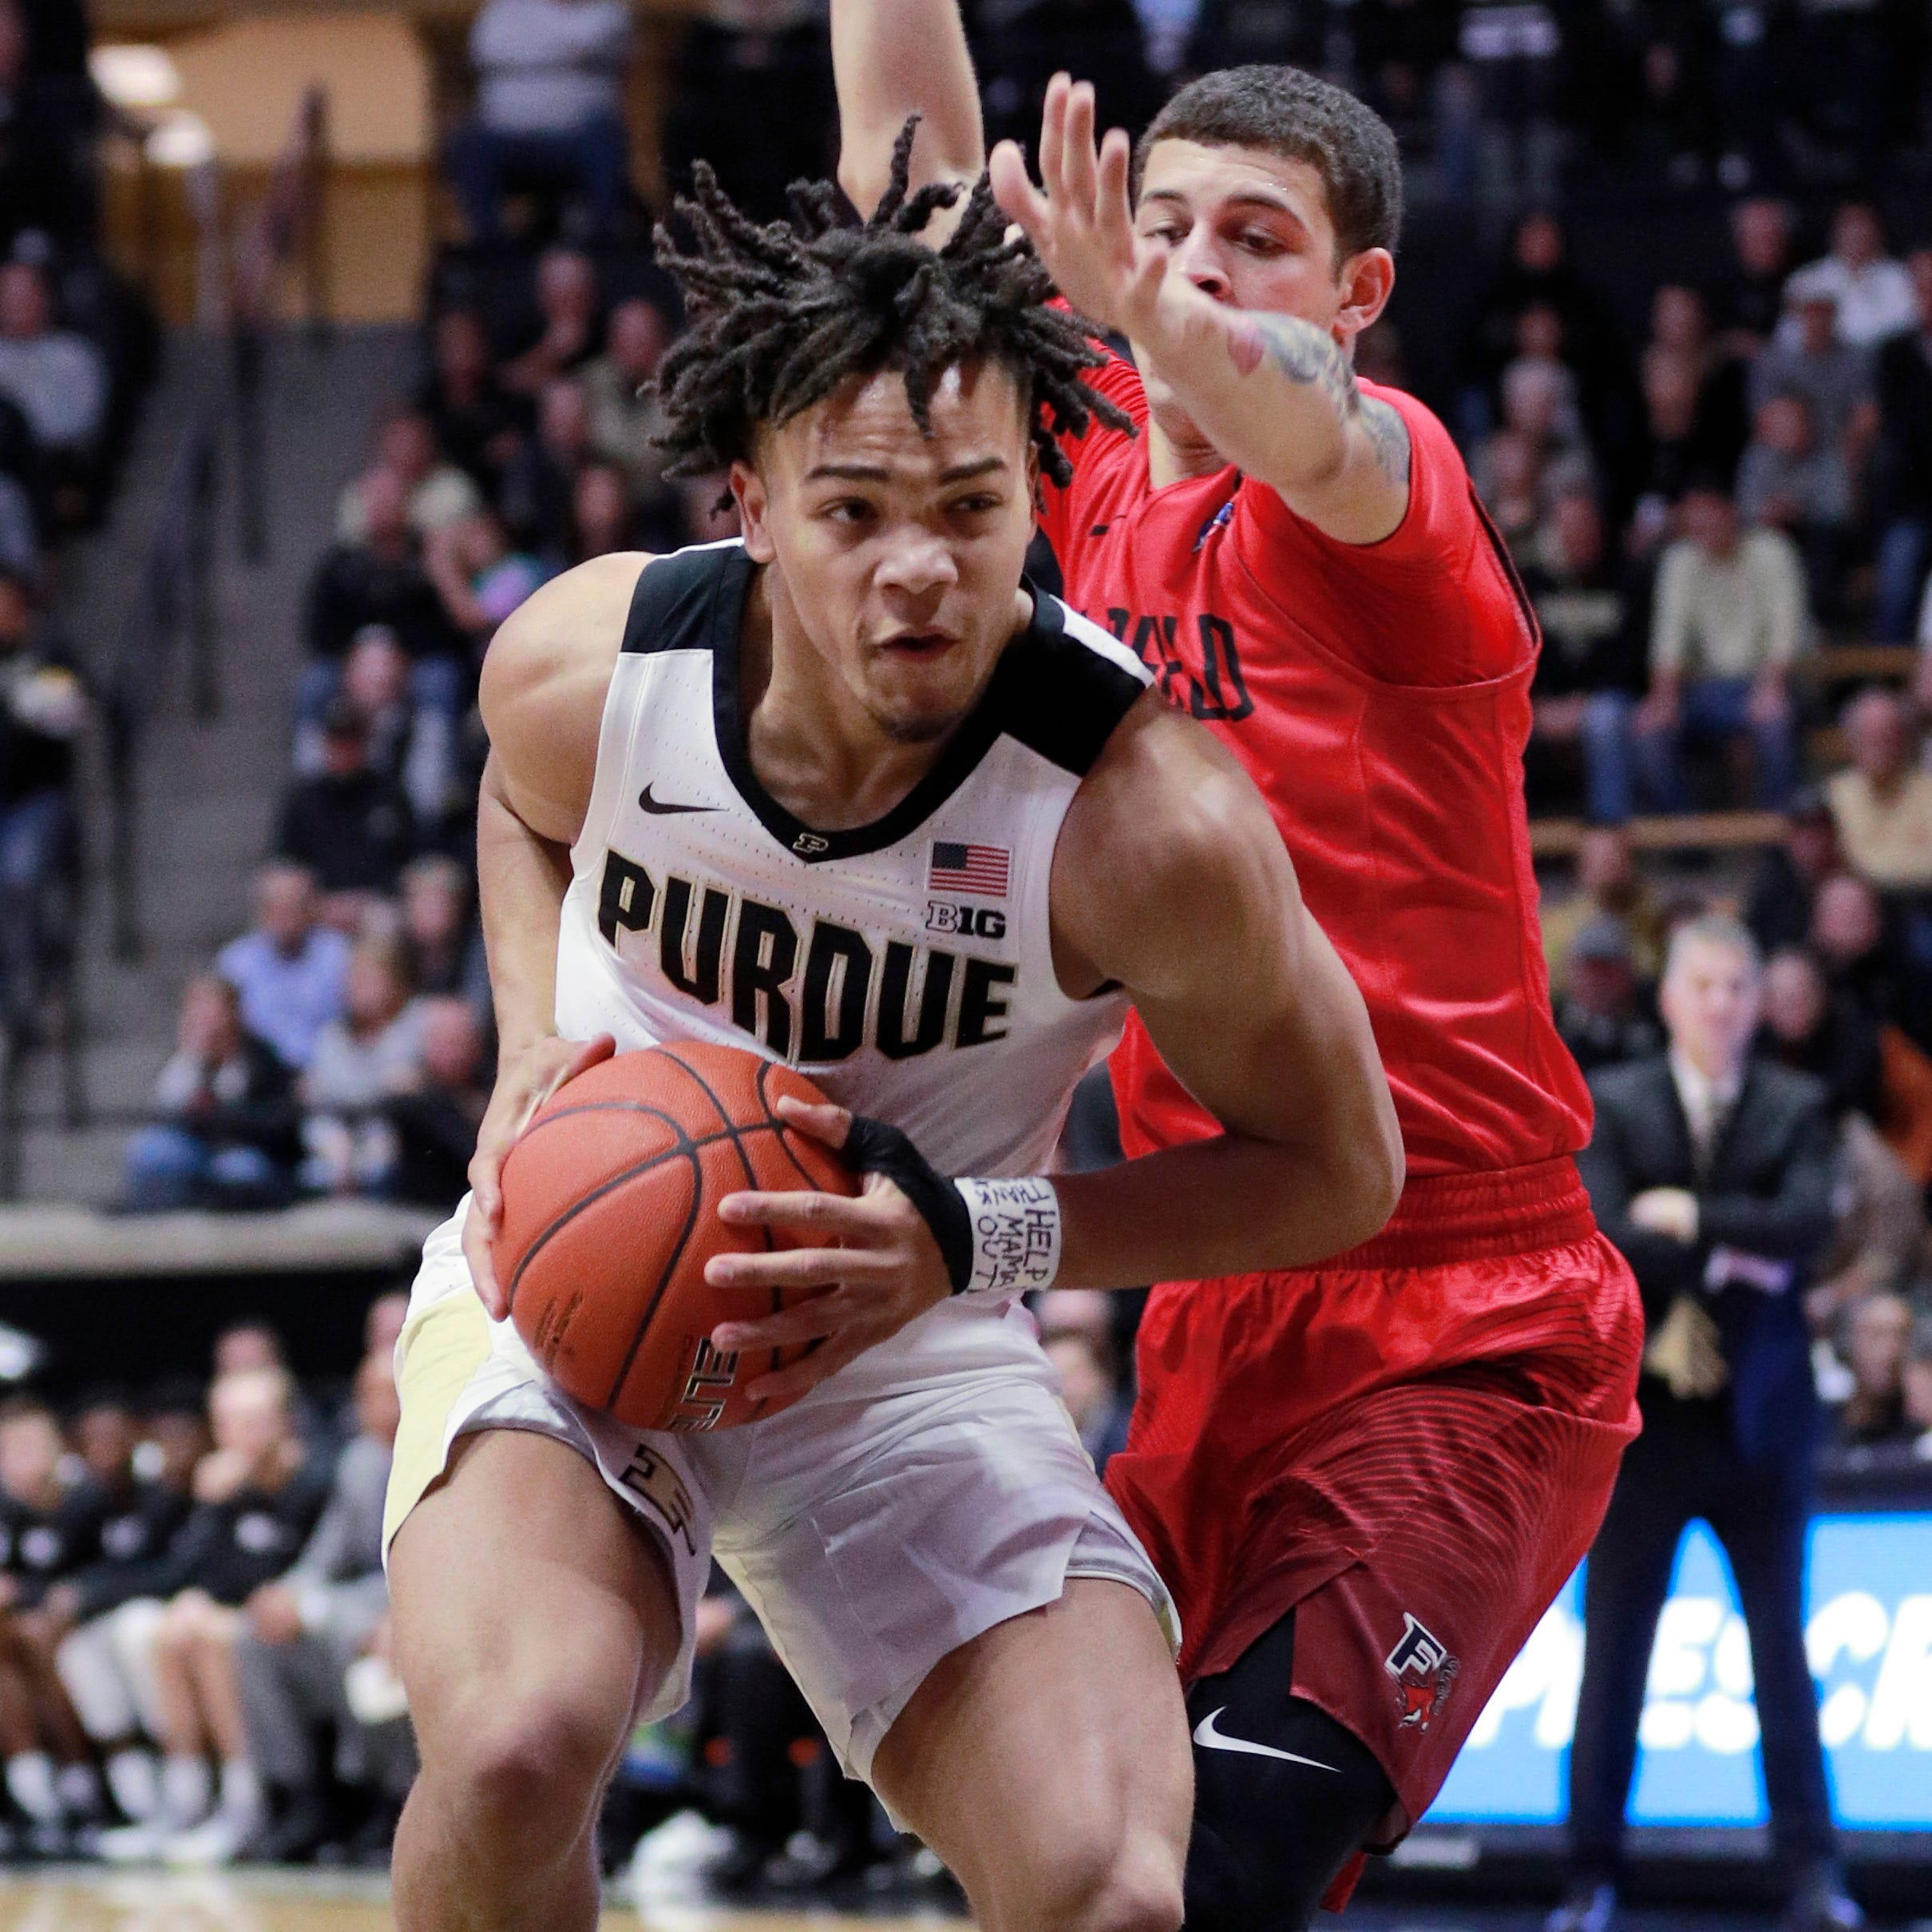 Purdue hoops opens season with win